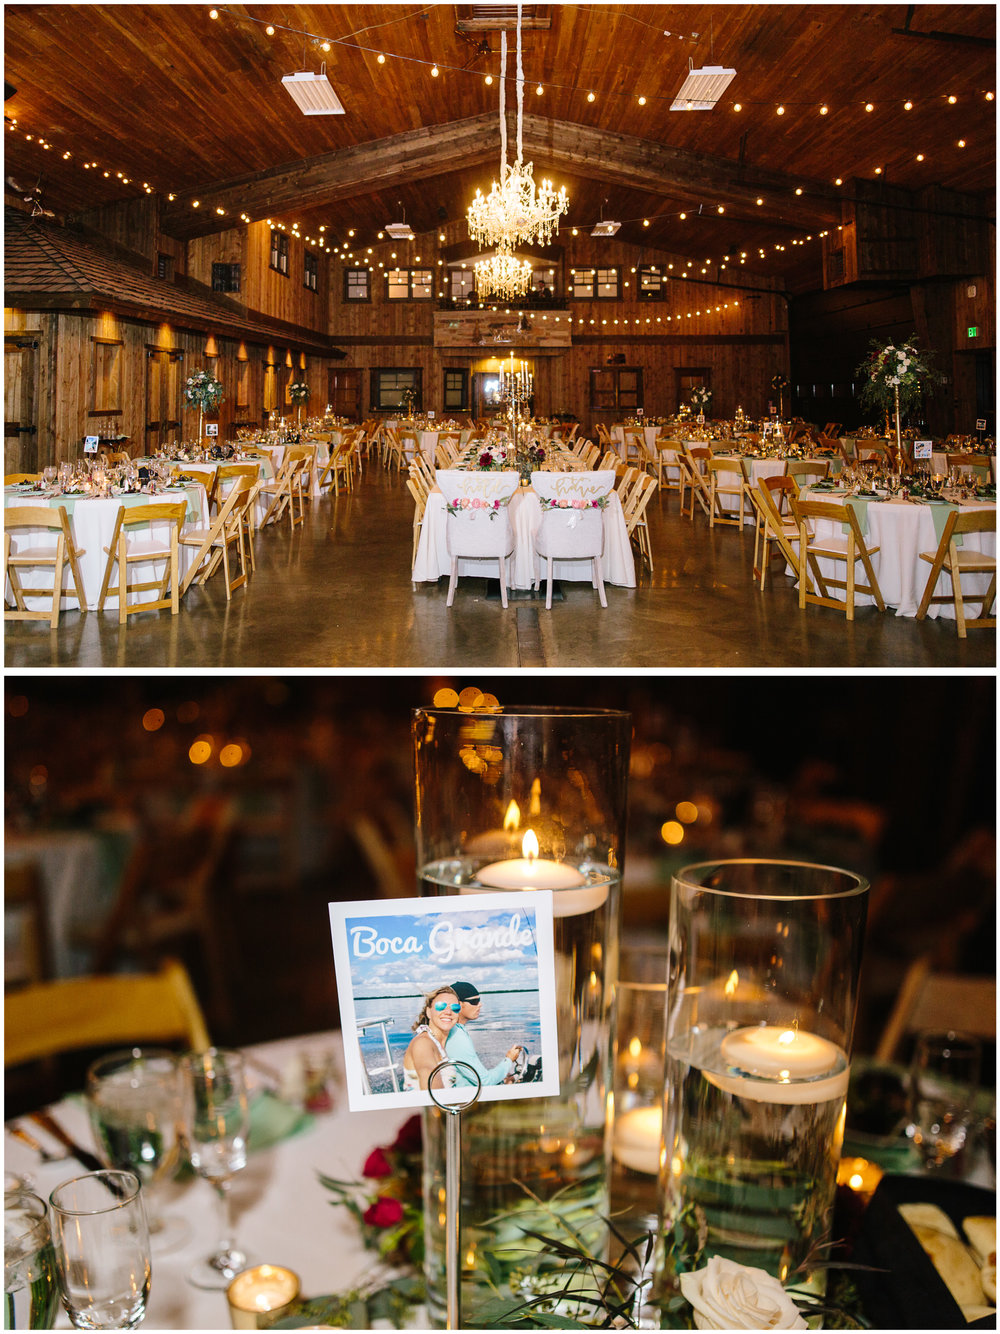 spruce_mountain_ranch_wedding_61.jpg